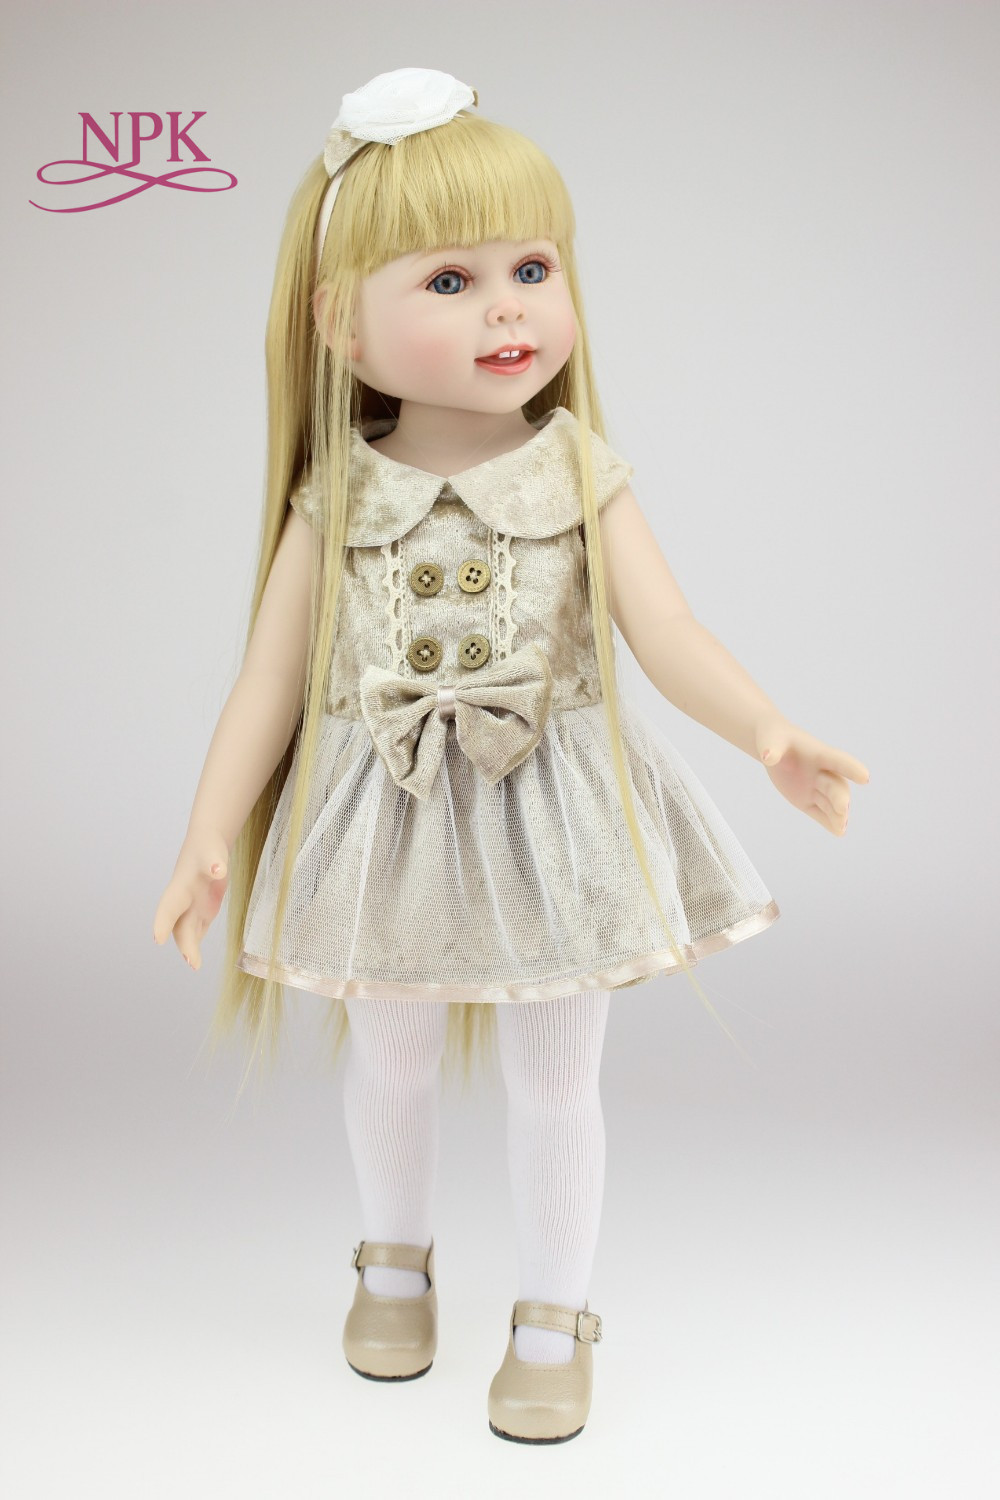 NPK Boneca Reborn Silicone 2018 New Arrival 1/4 Bjd Doll For Sd Lovely Resin With Makeup For Baby Girl Birthday Present